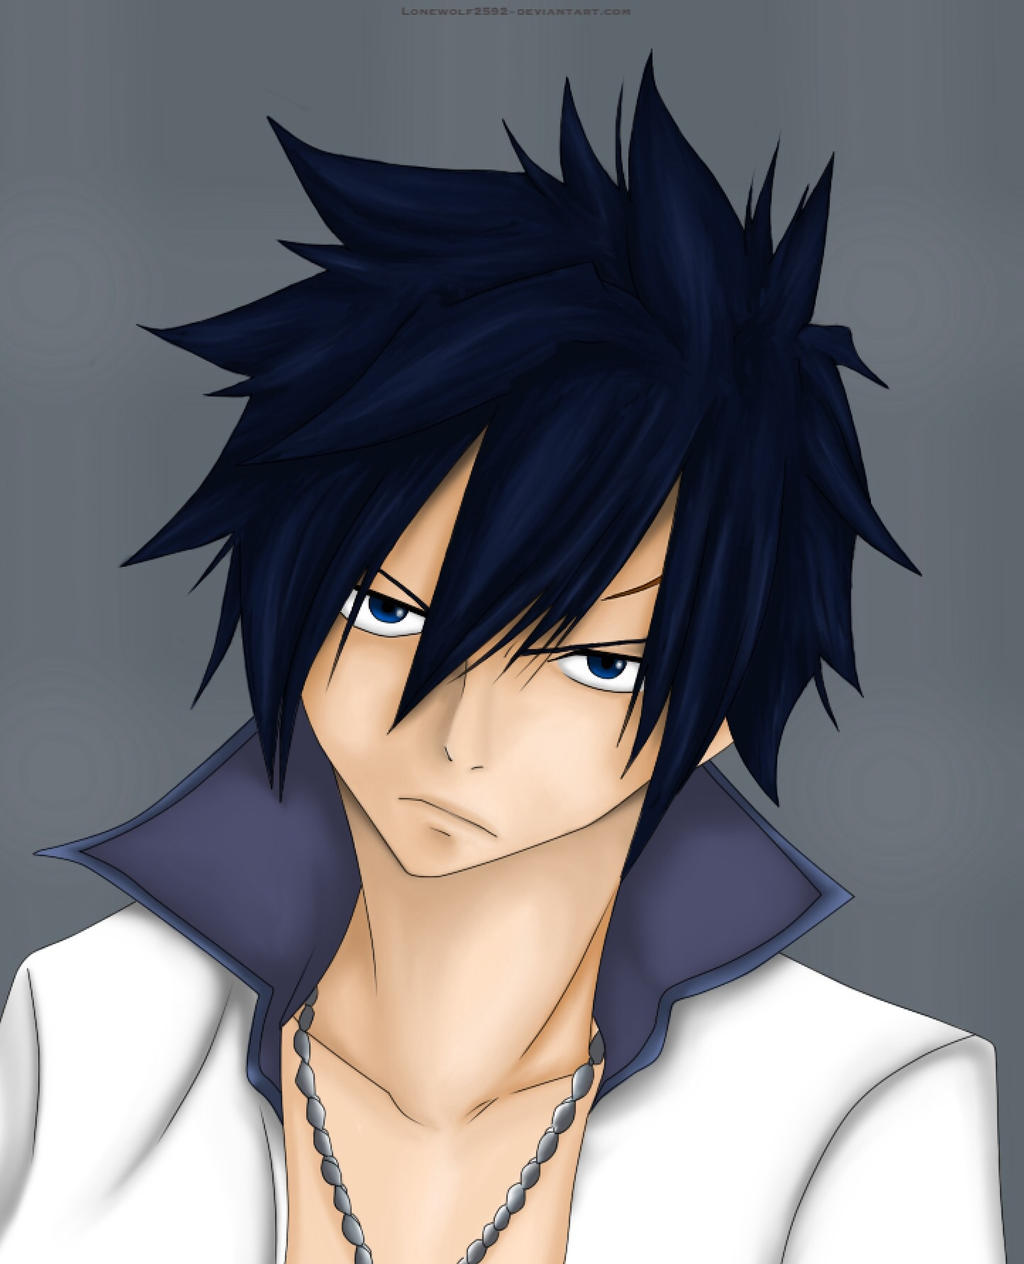 Gray Fullbuster by Lonewolf2592